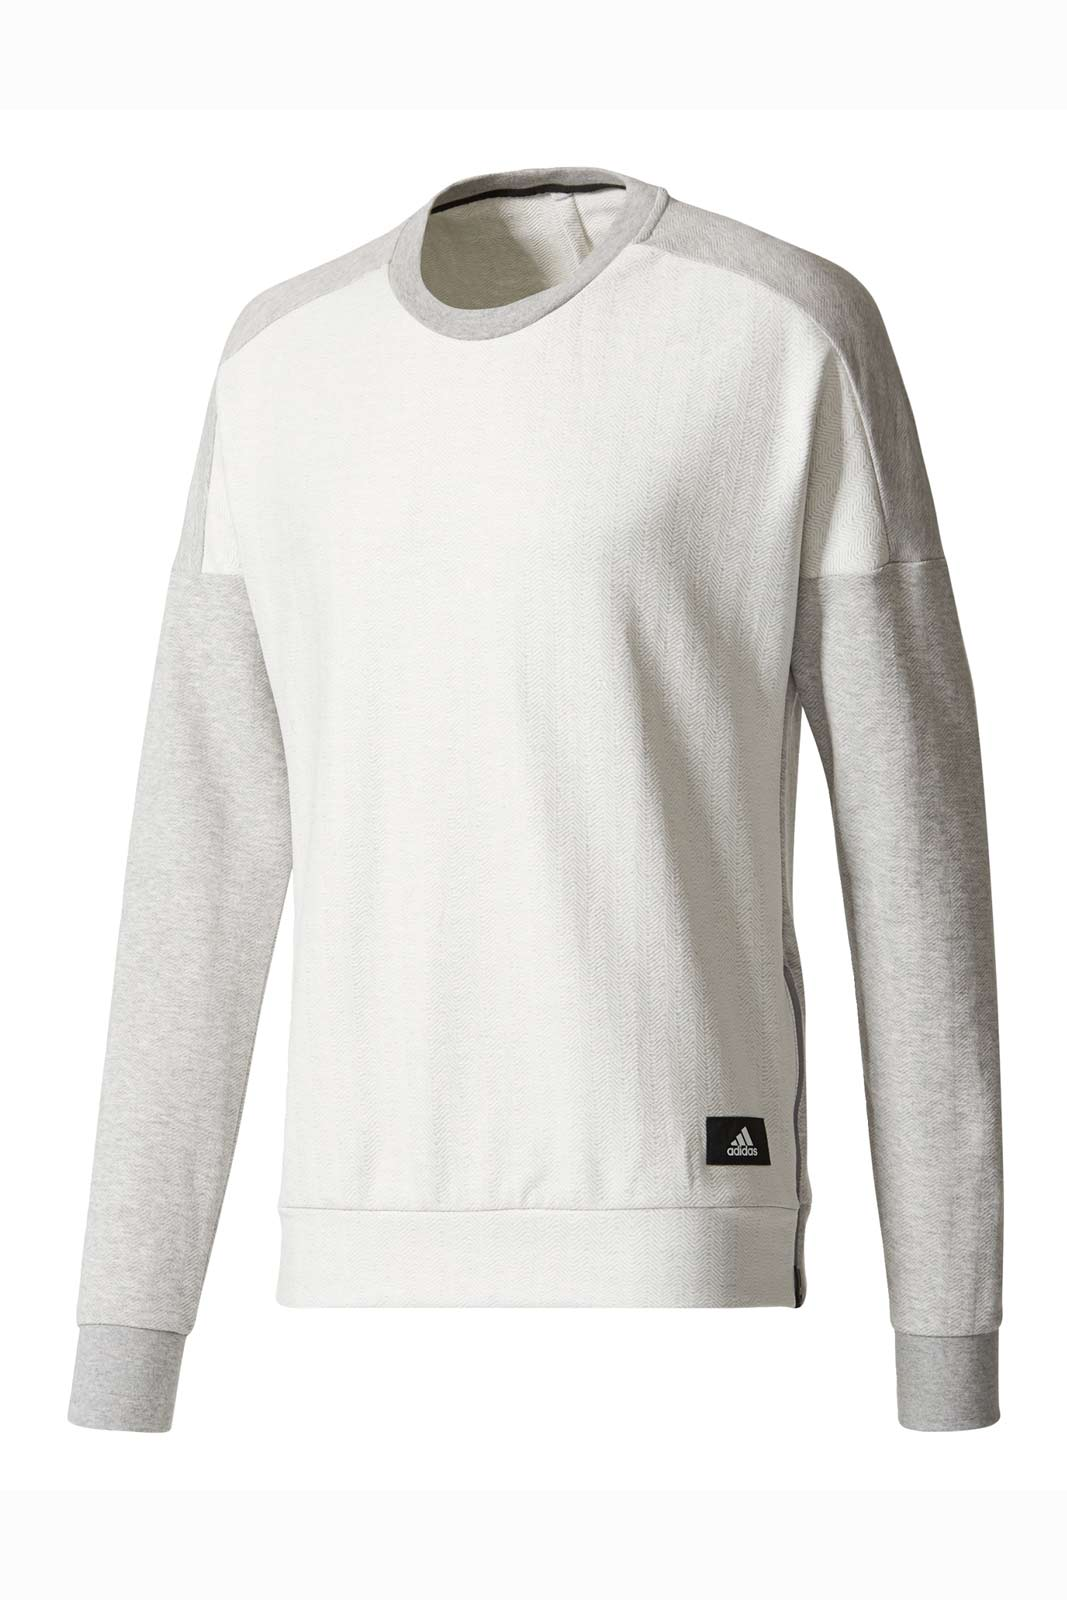 ADIDAS Athletics Crewneck Sweatshirt | Grey image 5 - The Sports Edit